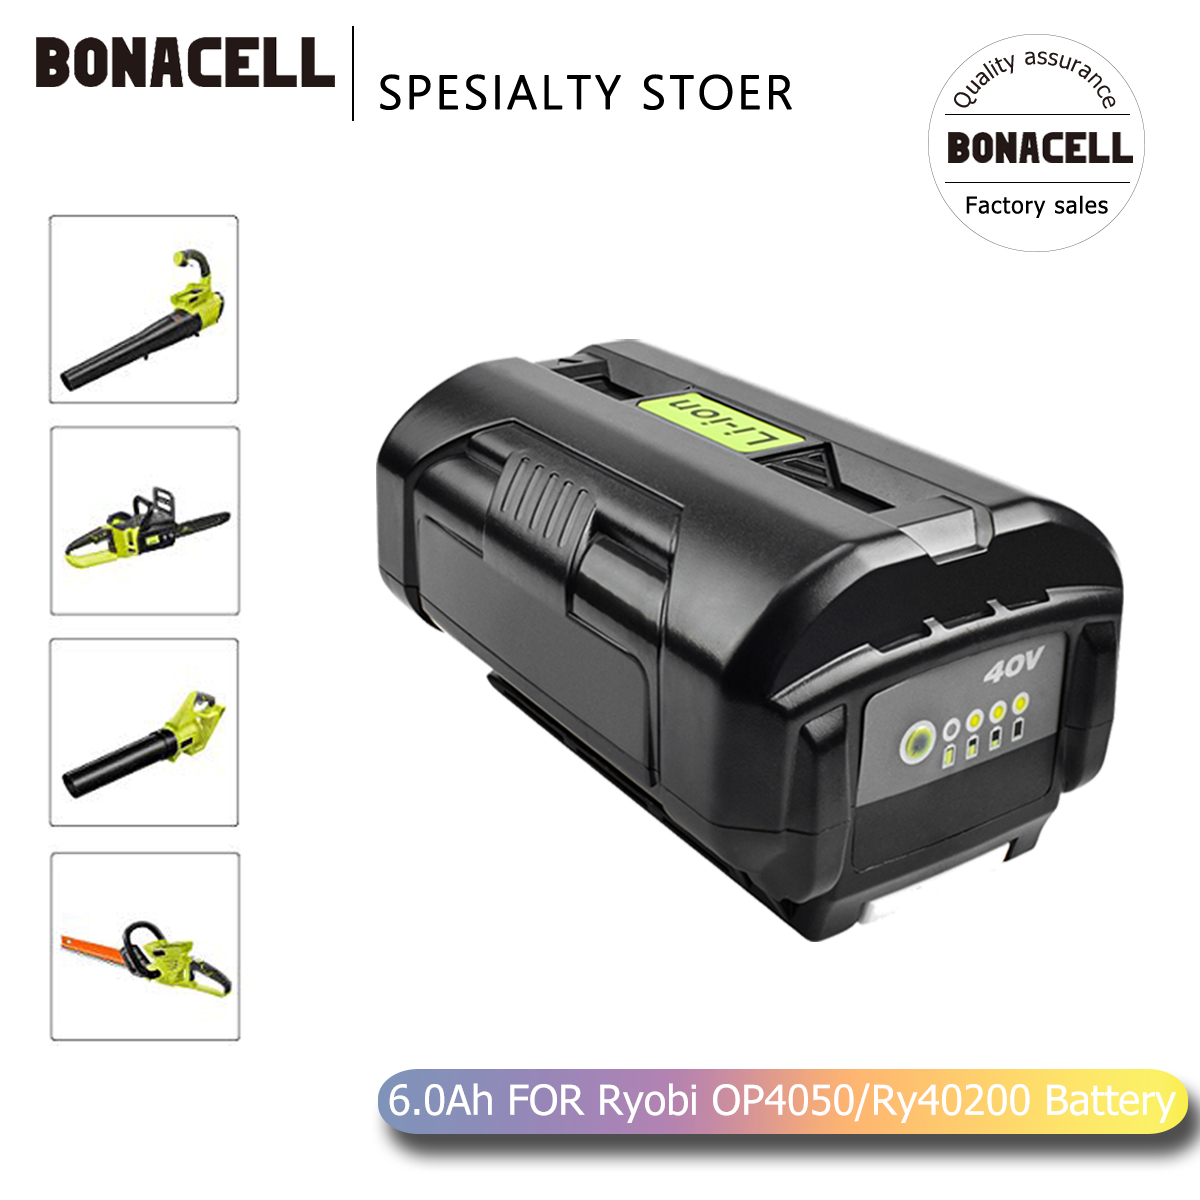 Bonacell 6000mAh 40V Li-ion Battery OP40401 OP4050A For Ryobi RY40502 RY40200 RY40400 Replacement Battery L70